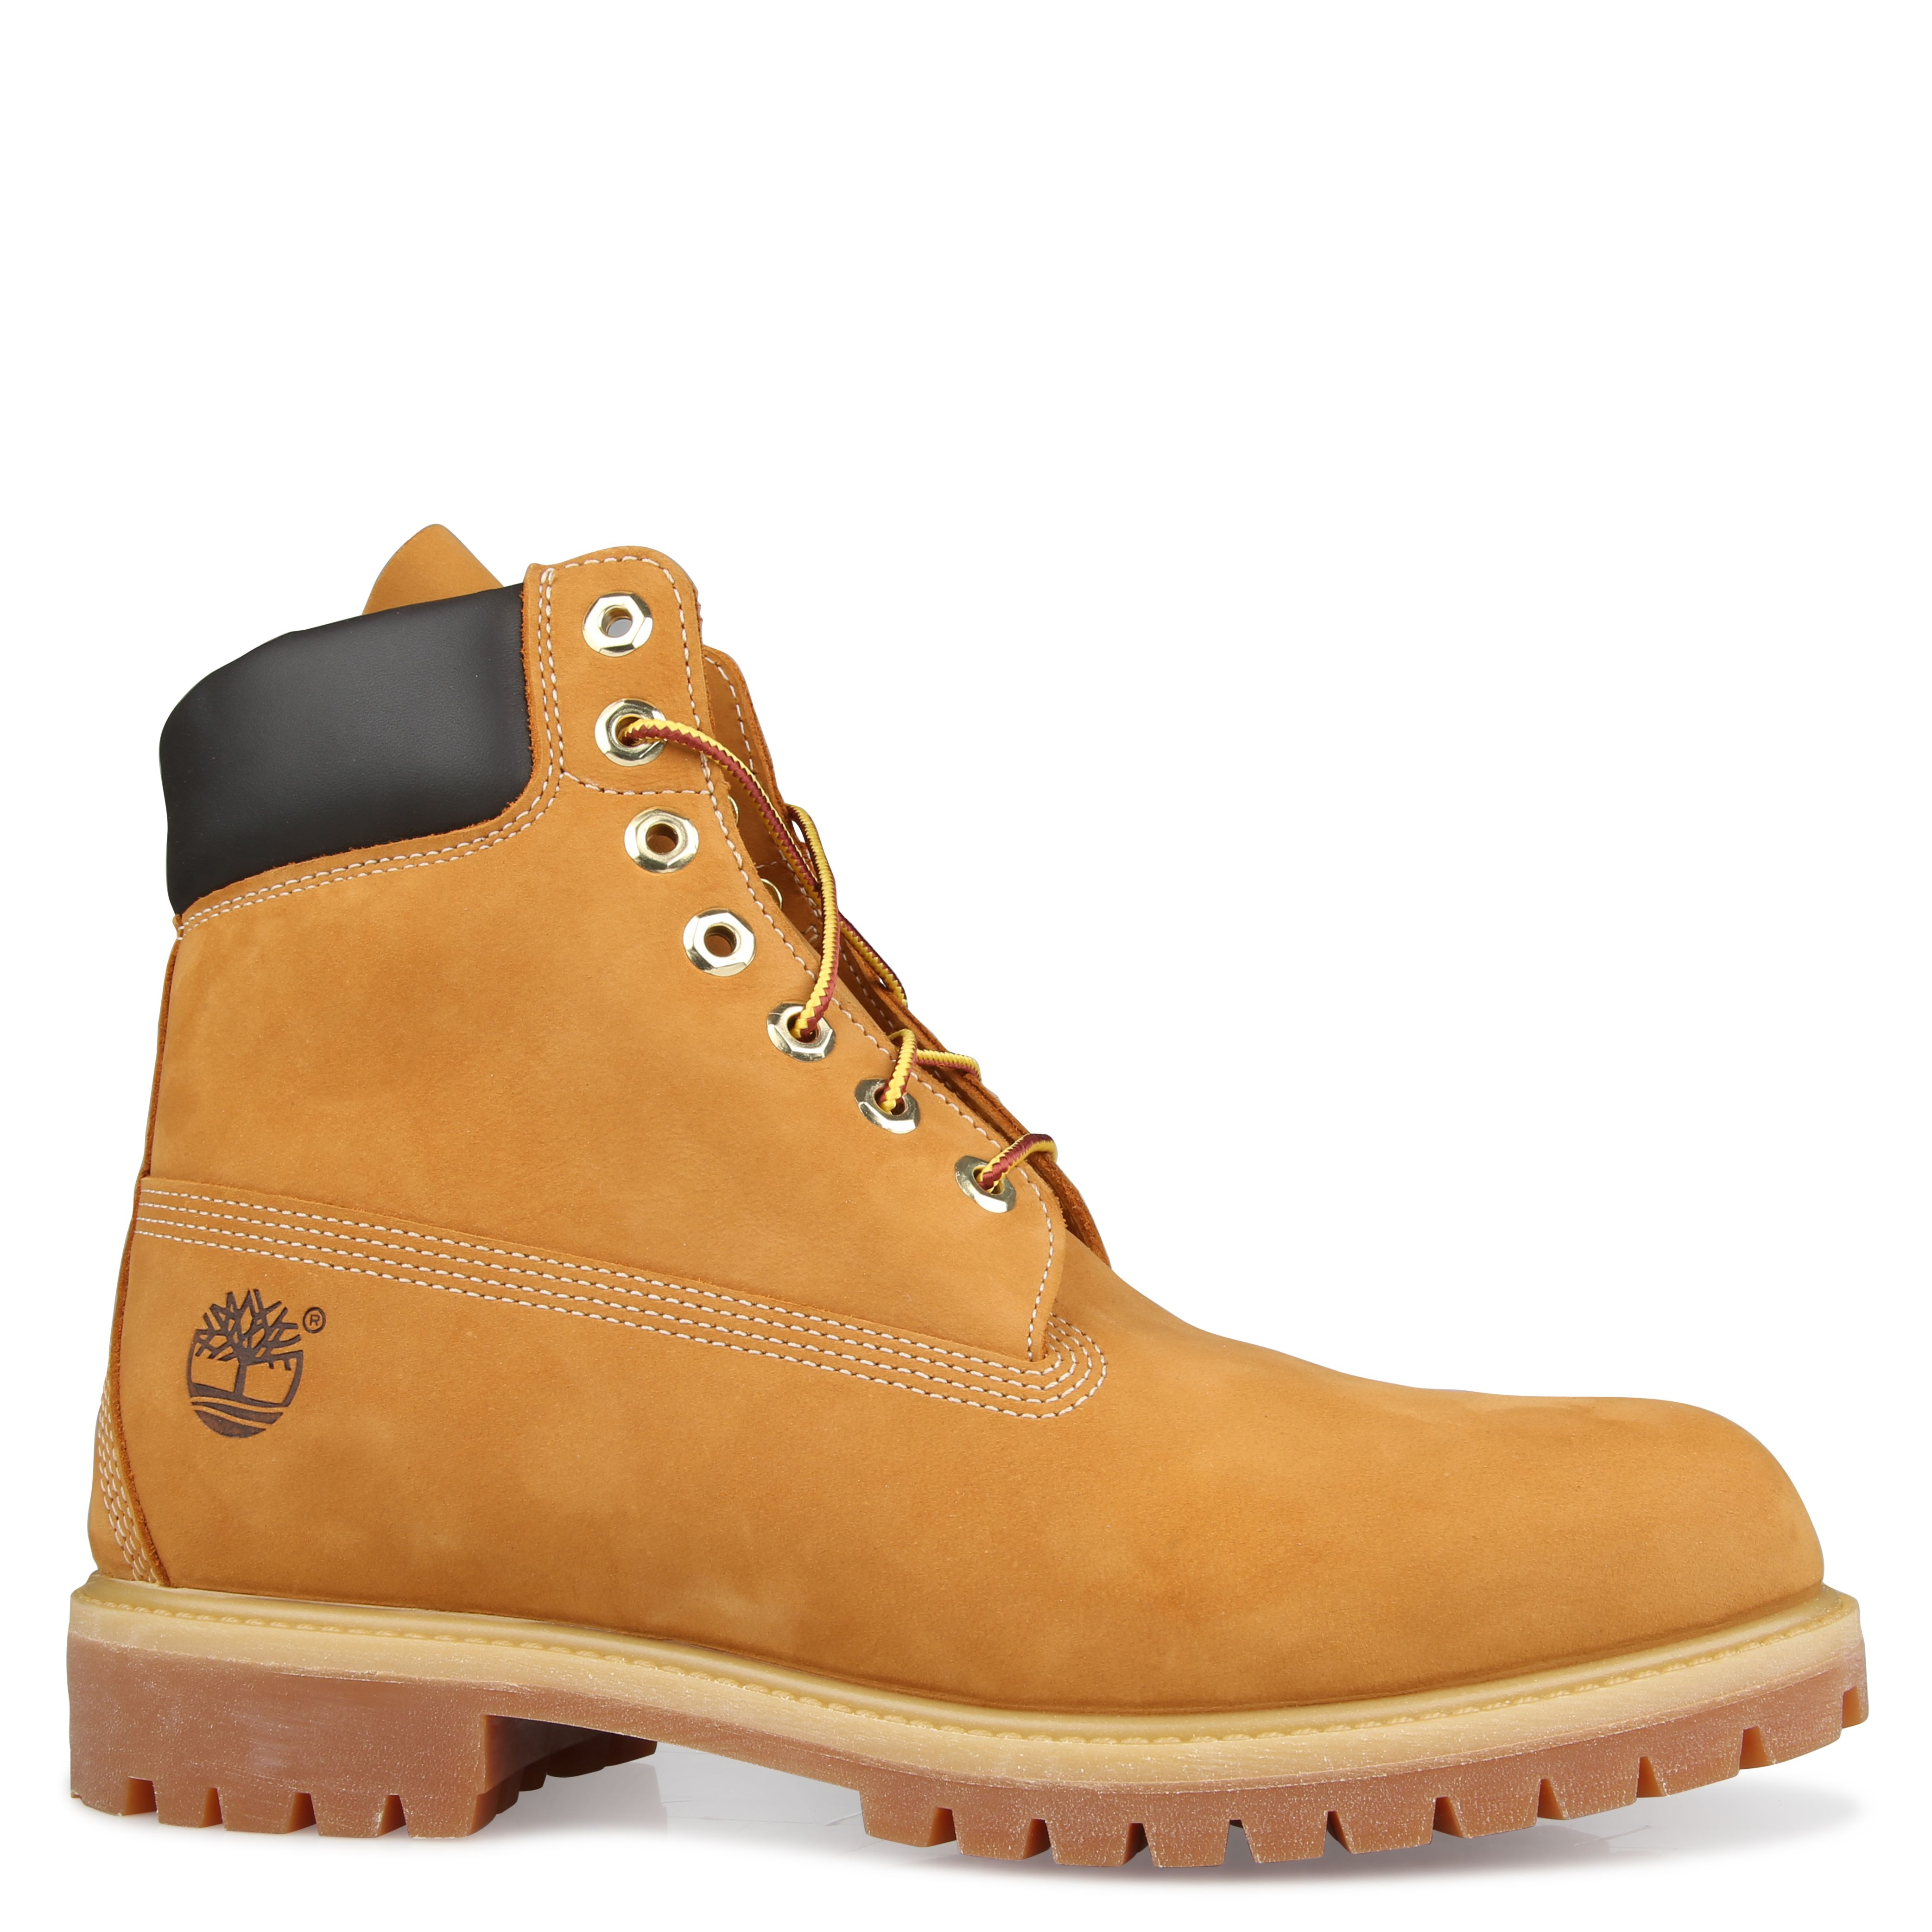 Shoe Connection Timberland Icon 6 Inch Premium Heavy Duty Wheat Nubuck Boot 359 99 Https Www Shoeconn Mens Casual Shoes Casual Shoes Mens Lace Up Boots